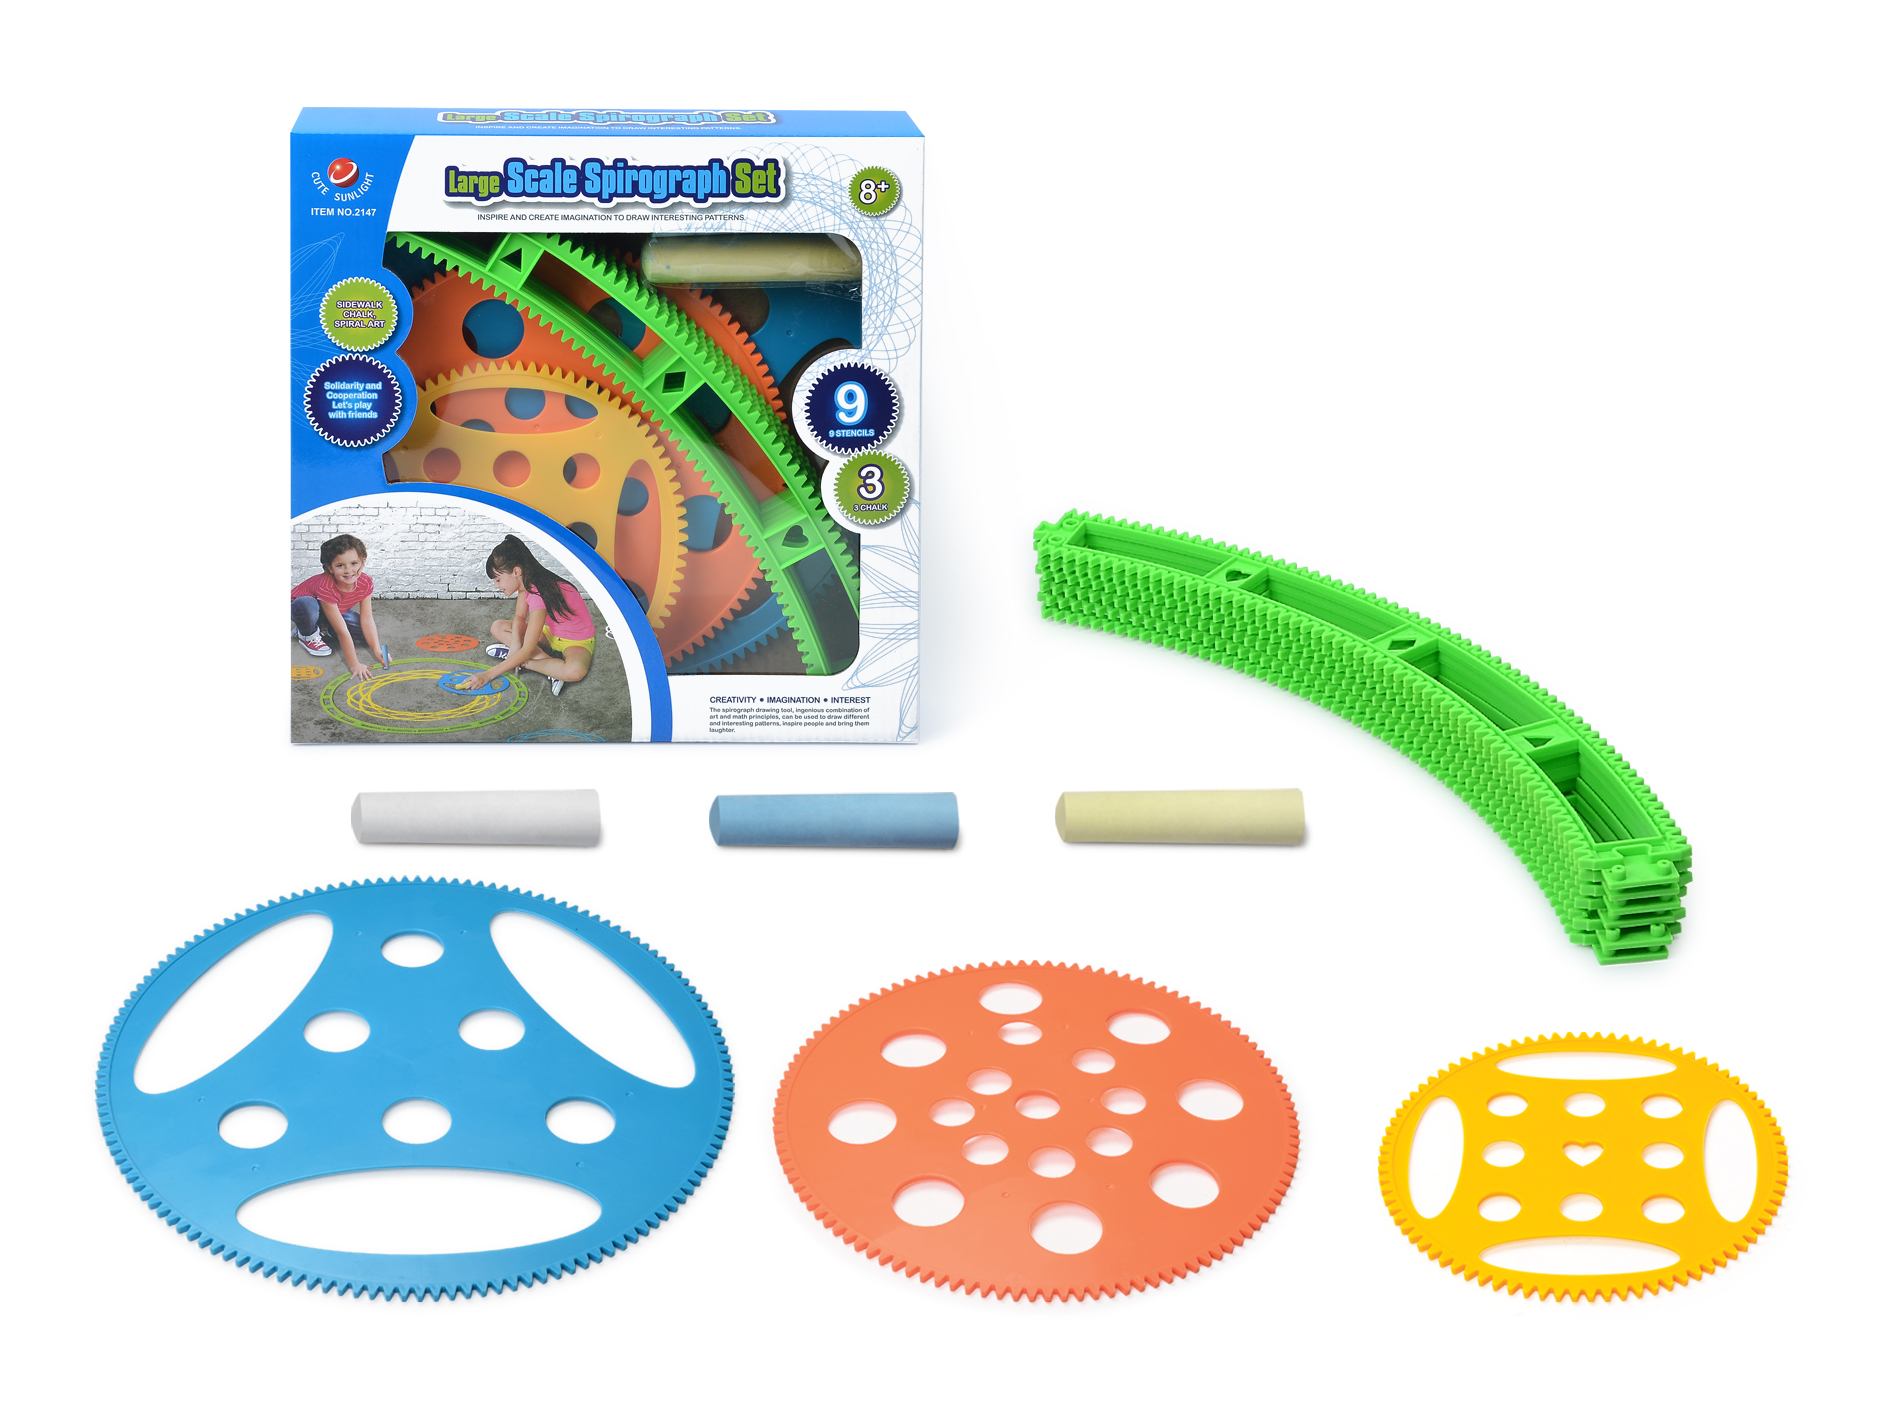 Large Scale Spirograph Set